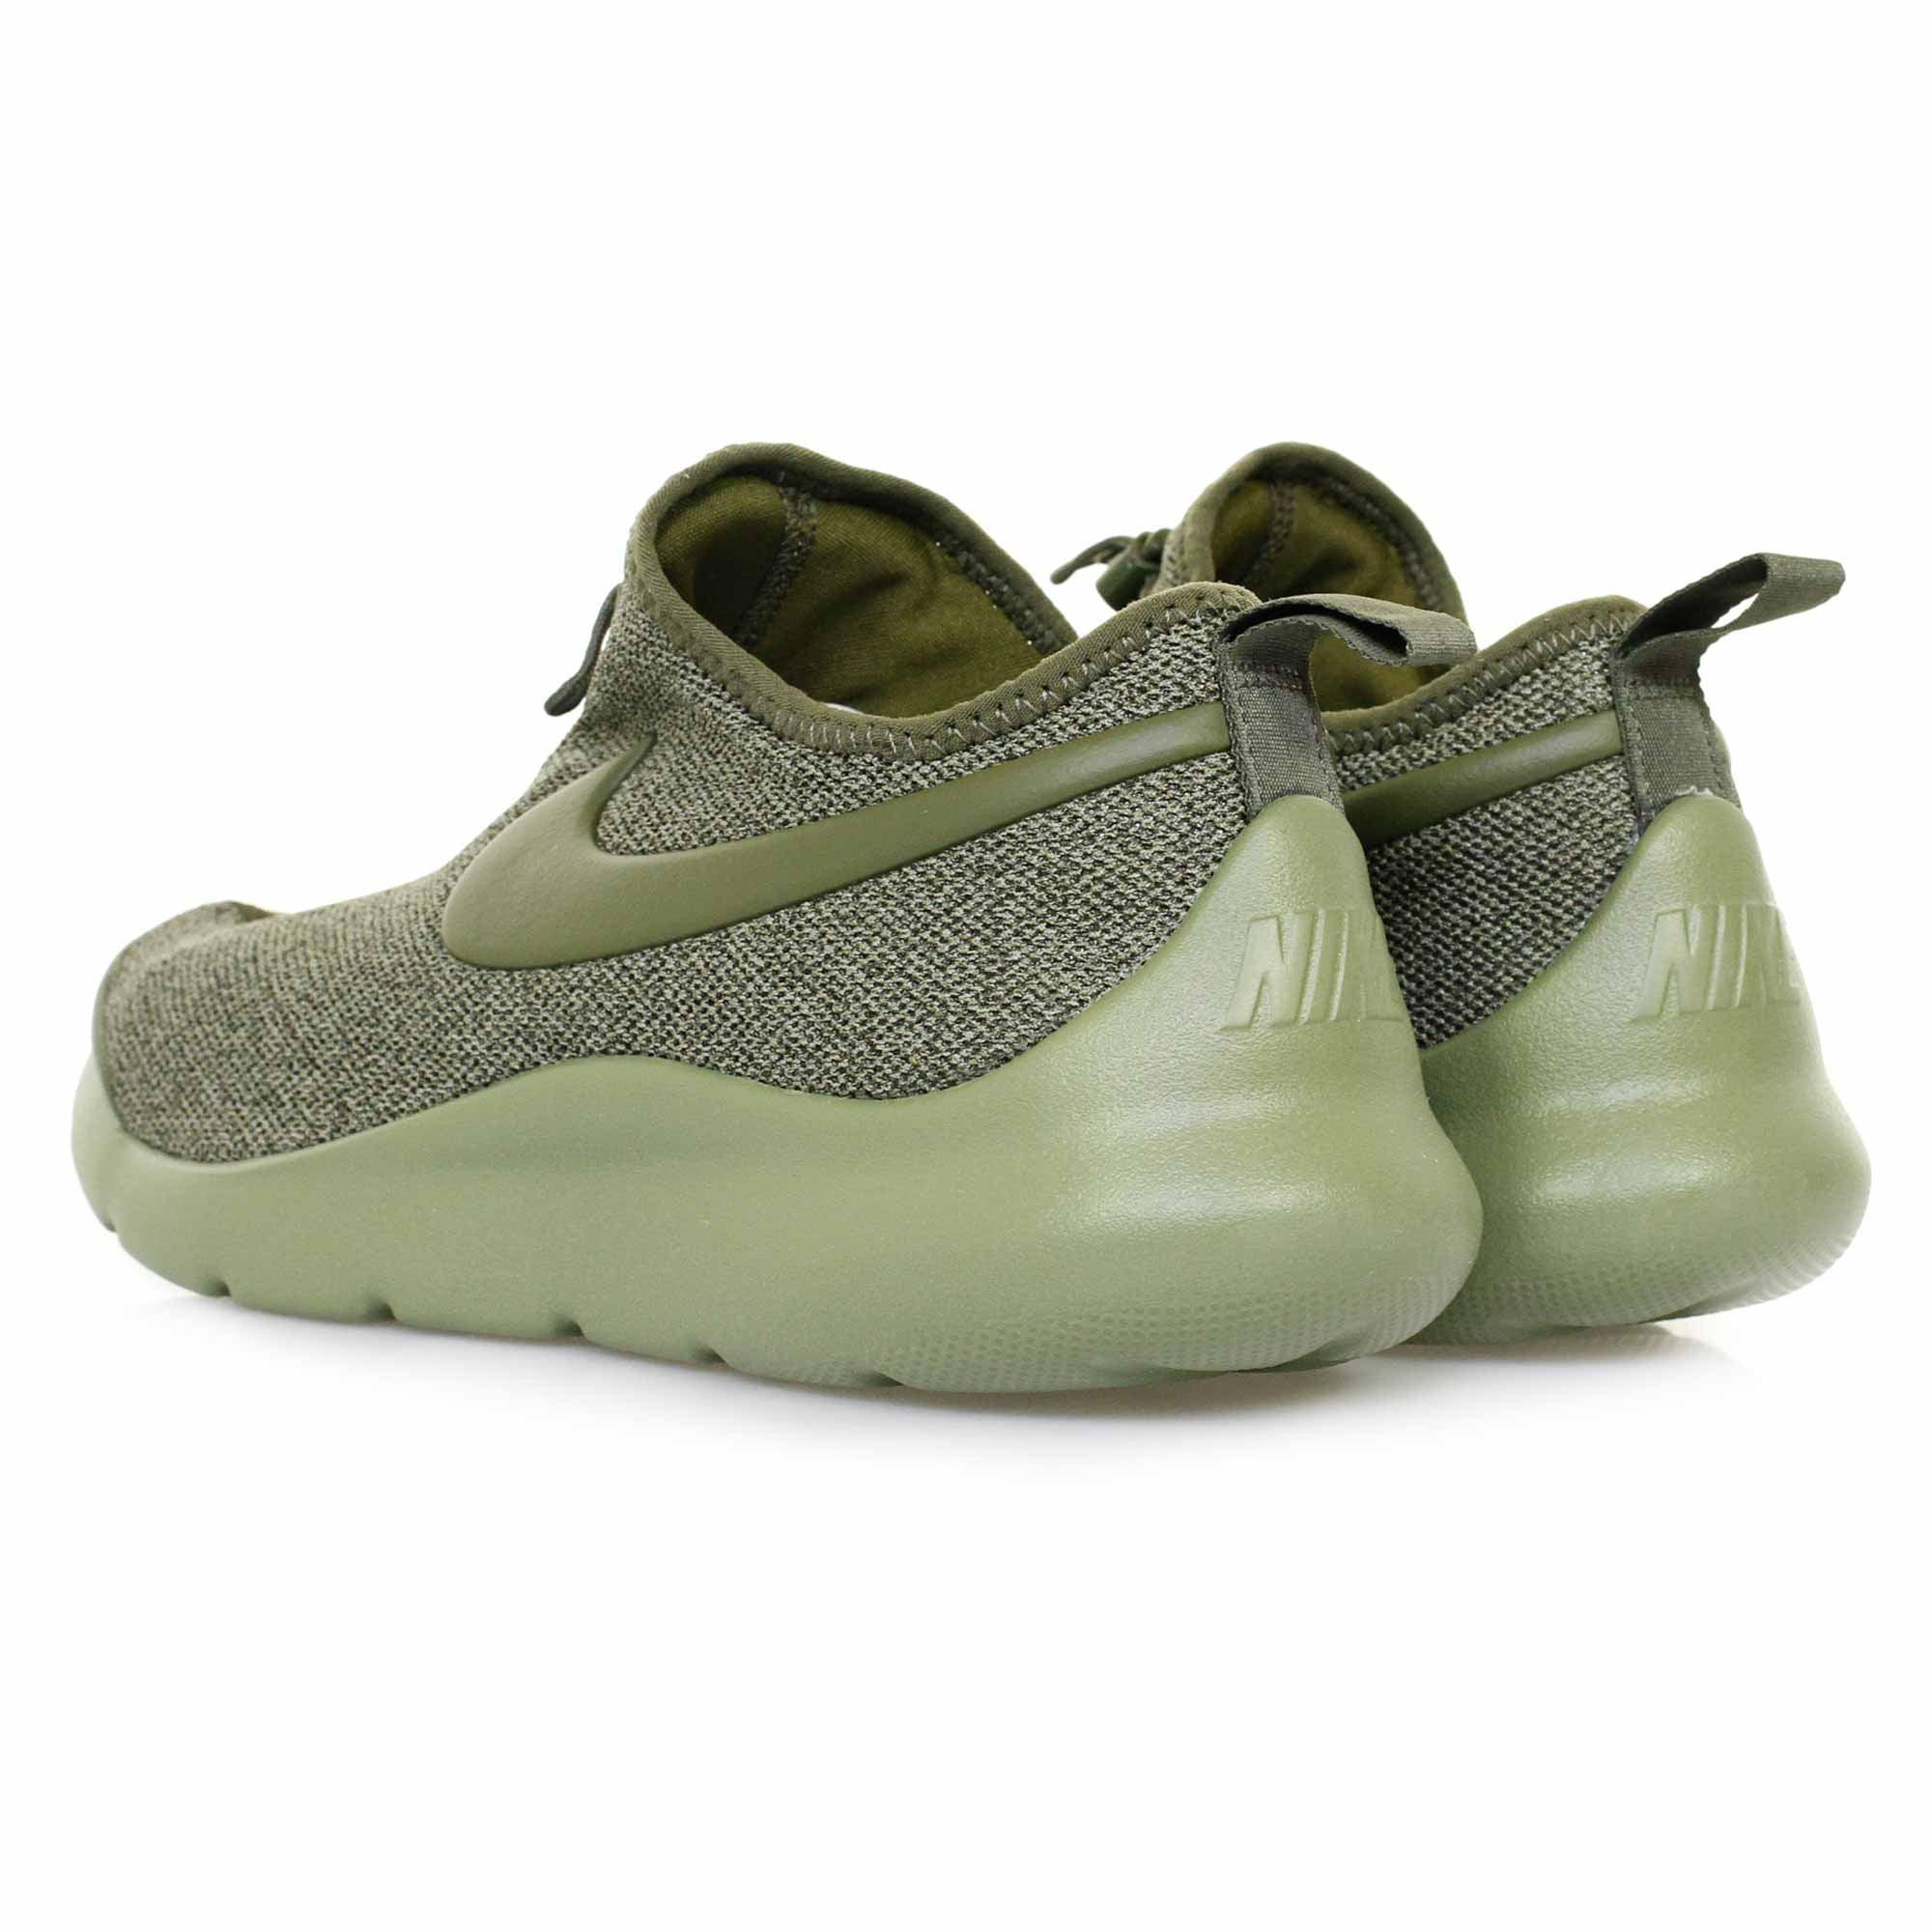 34dea3dd7787 buy nike aptare se rough green shoe 881988 in green for men lyst c53e0 8ac53